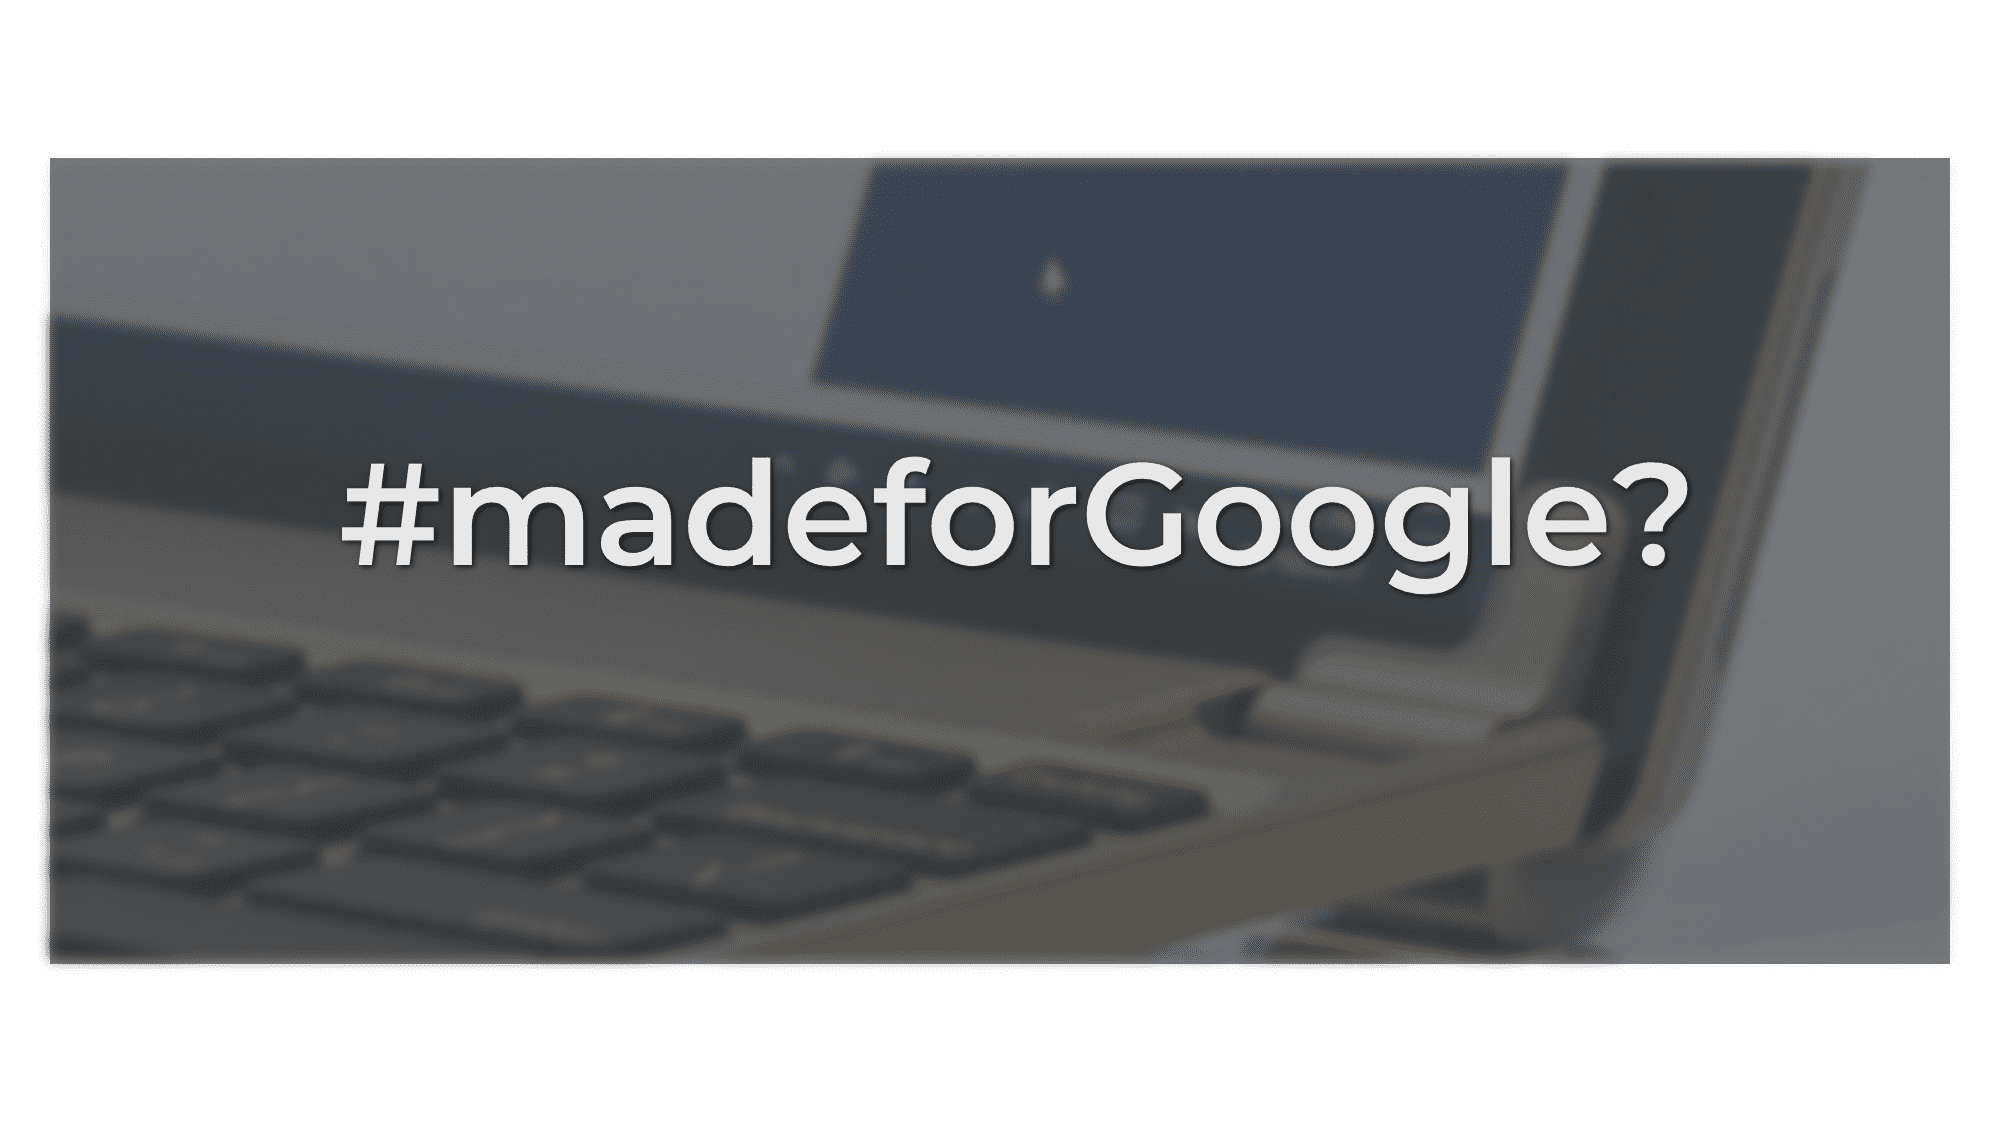 Premium Keyboard Maker Brydge Is Working On A Chromebook Model: Made For Google?